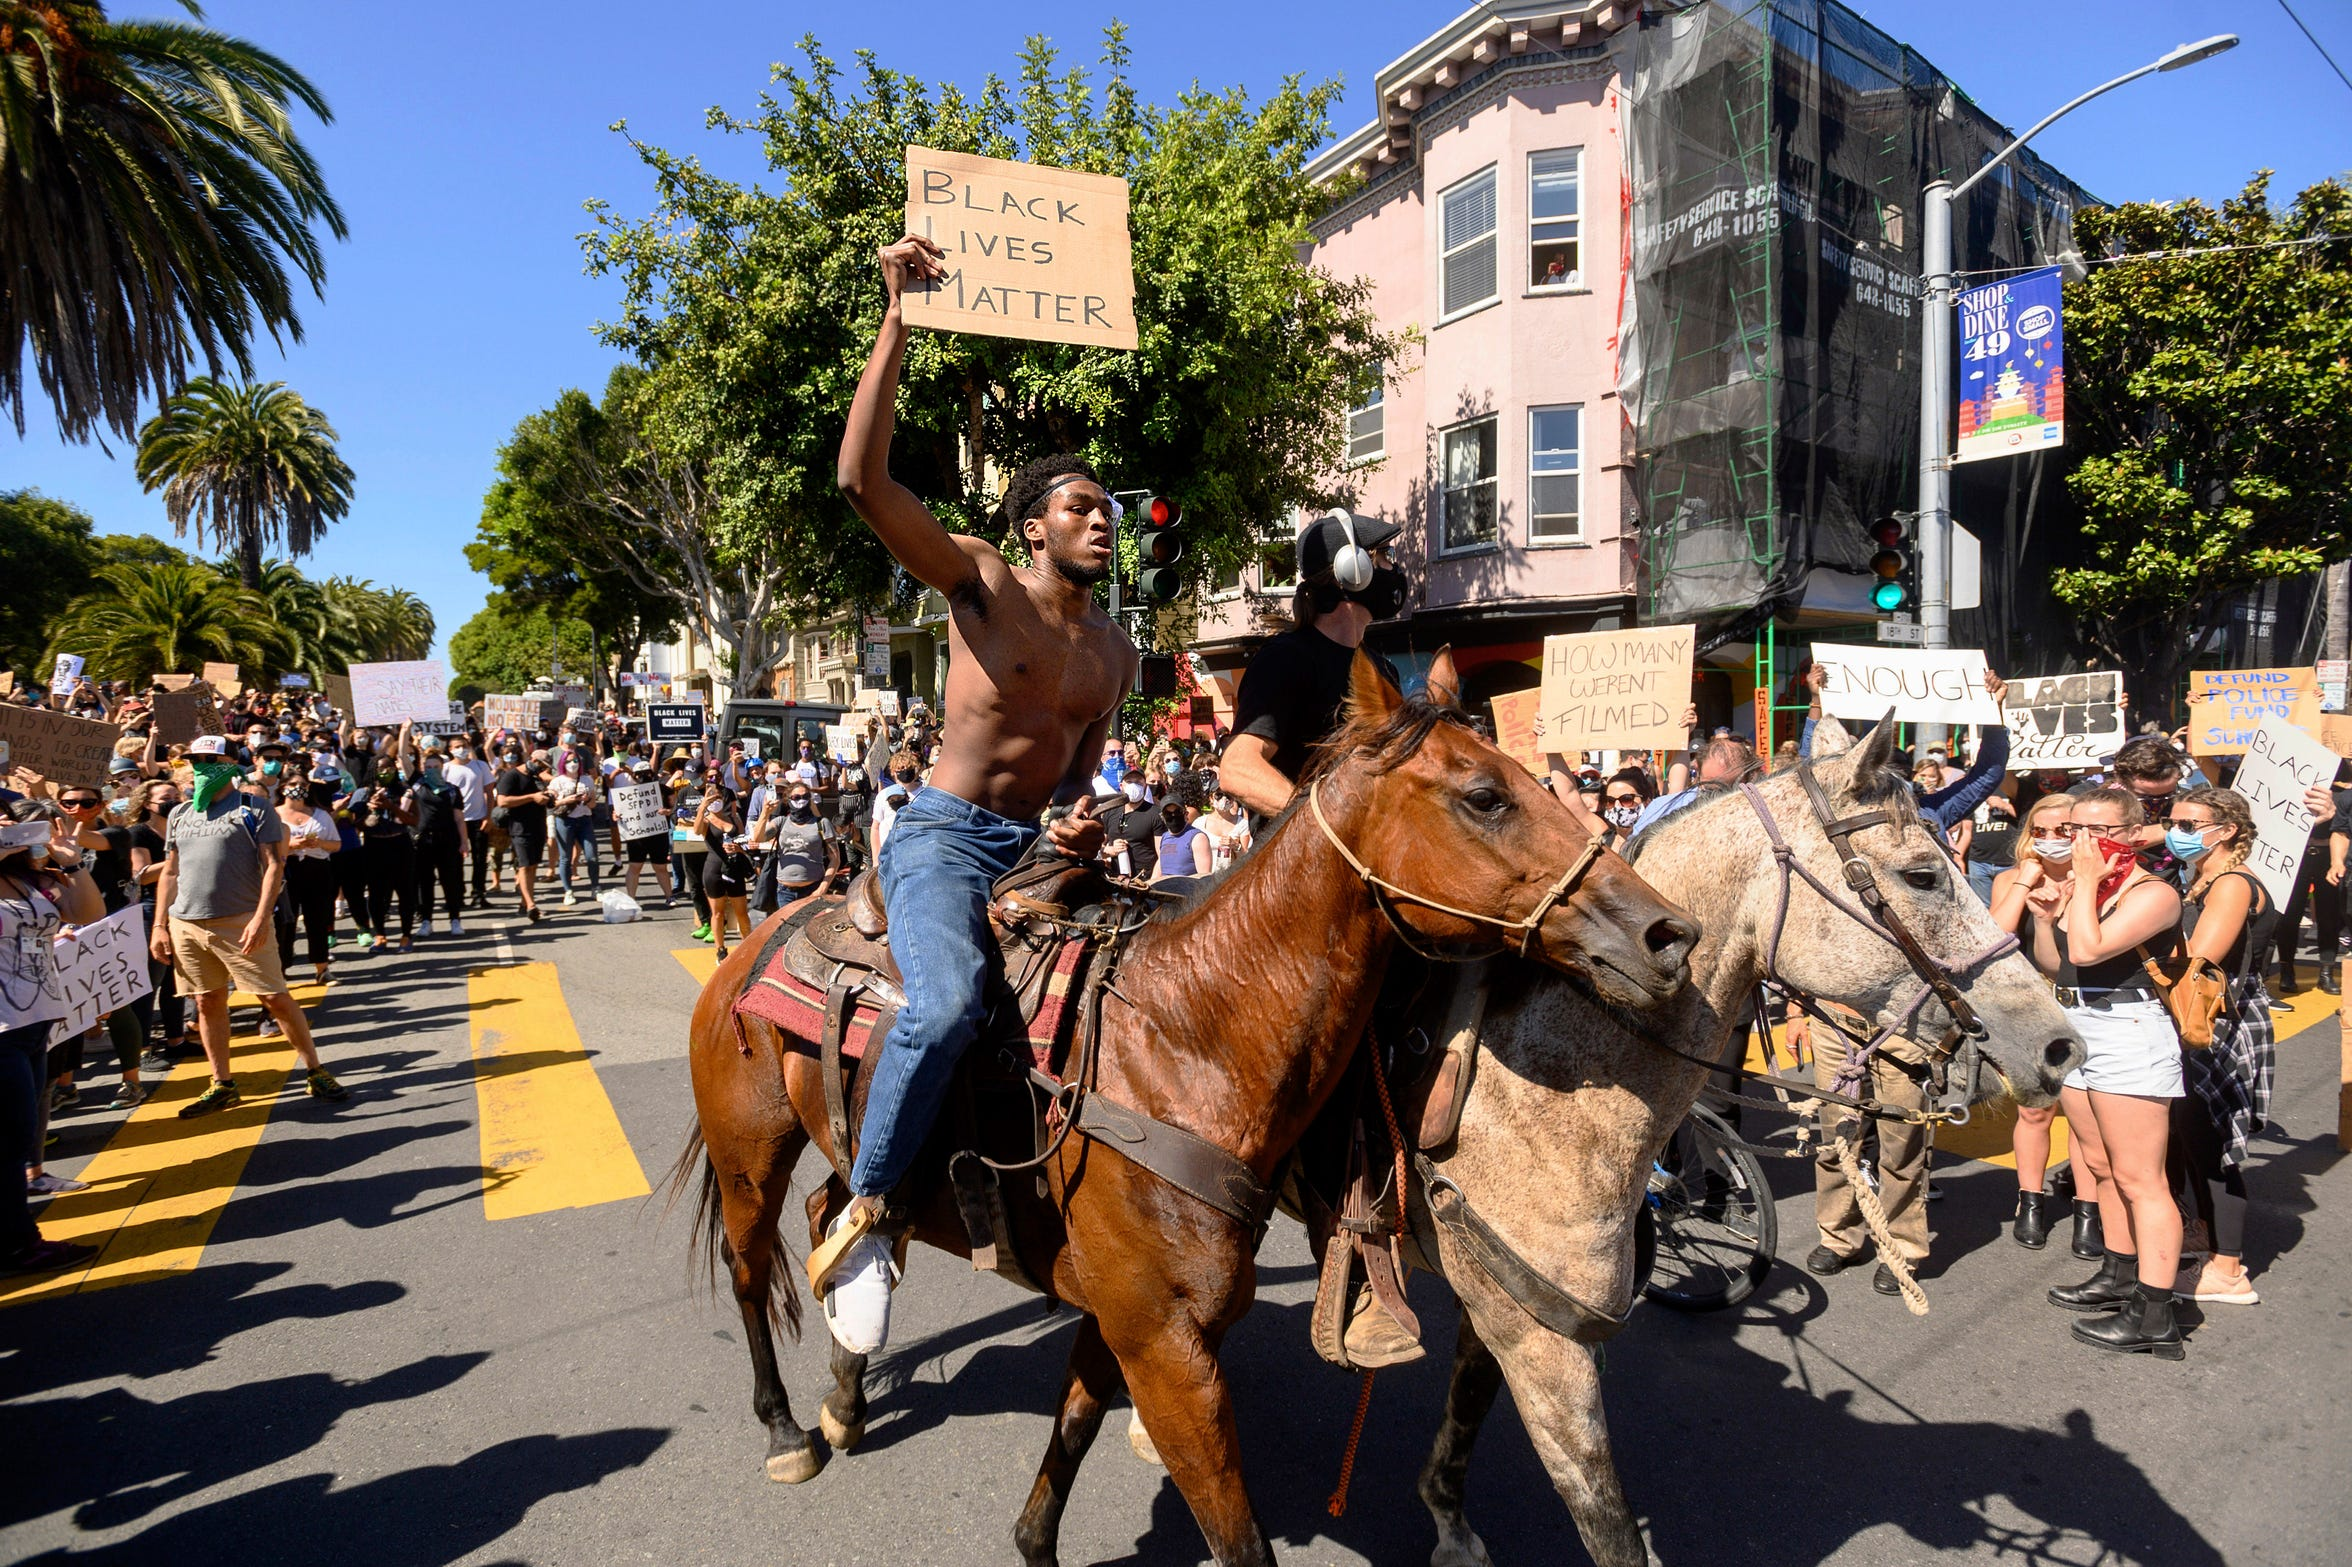 Chinedu Anigbogu rides a horse with demonstrators in a rally in San Francisco's Mission District on Wednesday, June 3, 2020, to protest the death of George Floyd, who died after being restrained by Minneapolis police officers on May 25.